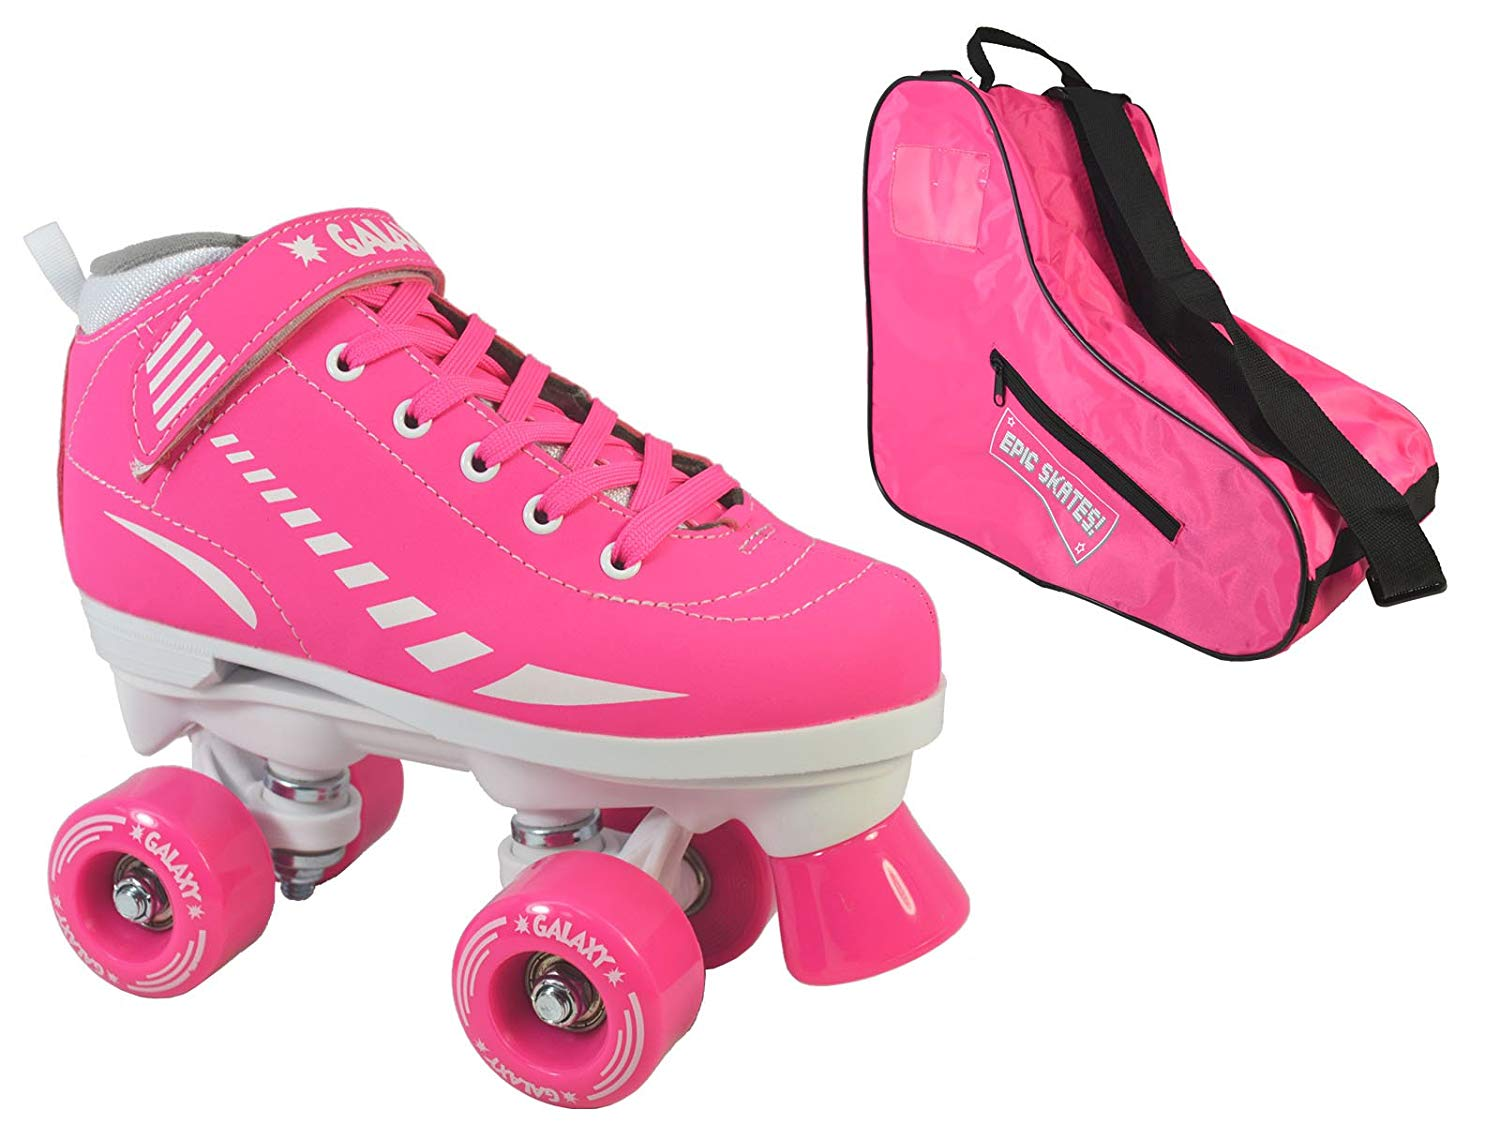 Epic Skates Epic Pink Galaxy Elite Quad Roller Skate 3-piece Bundle 3